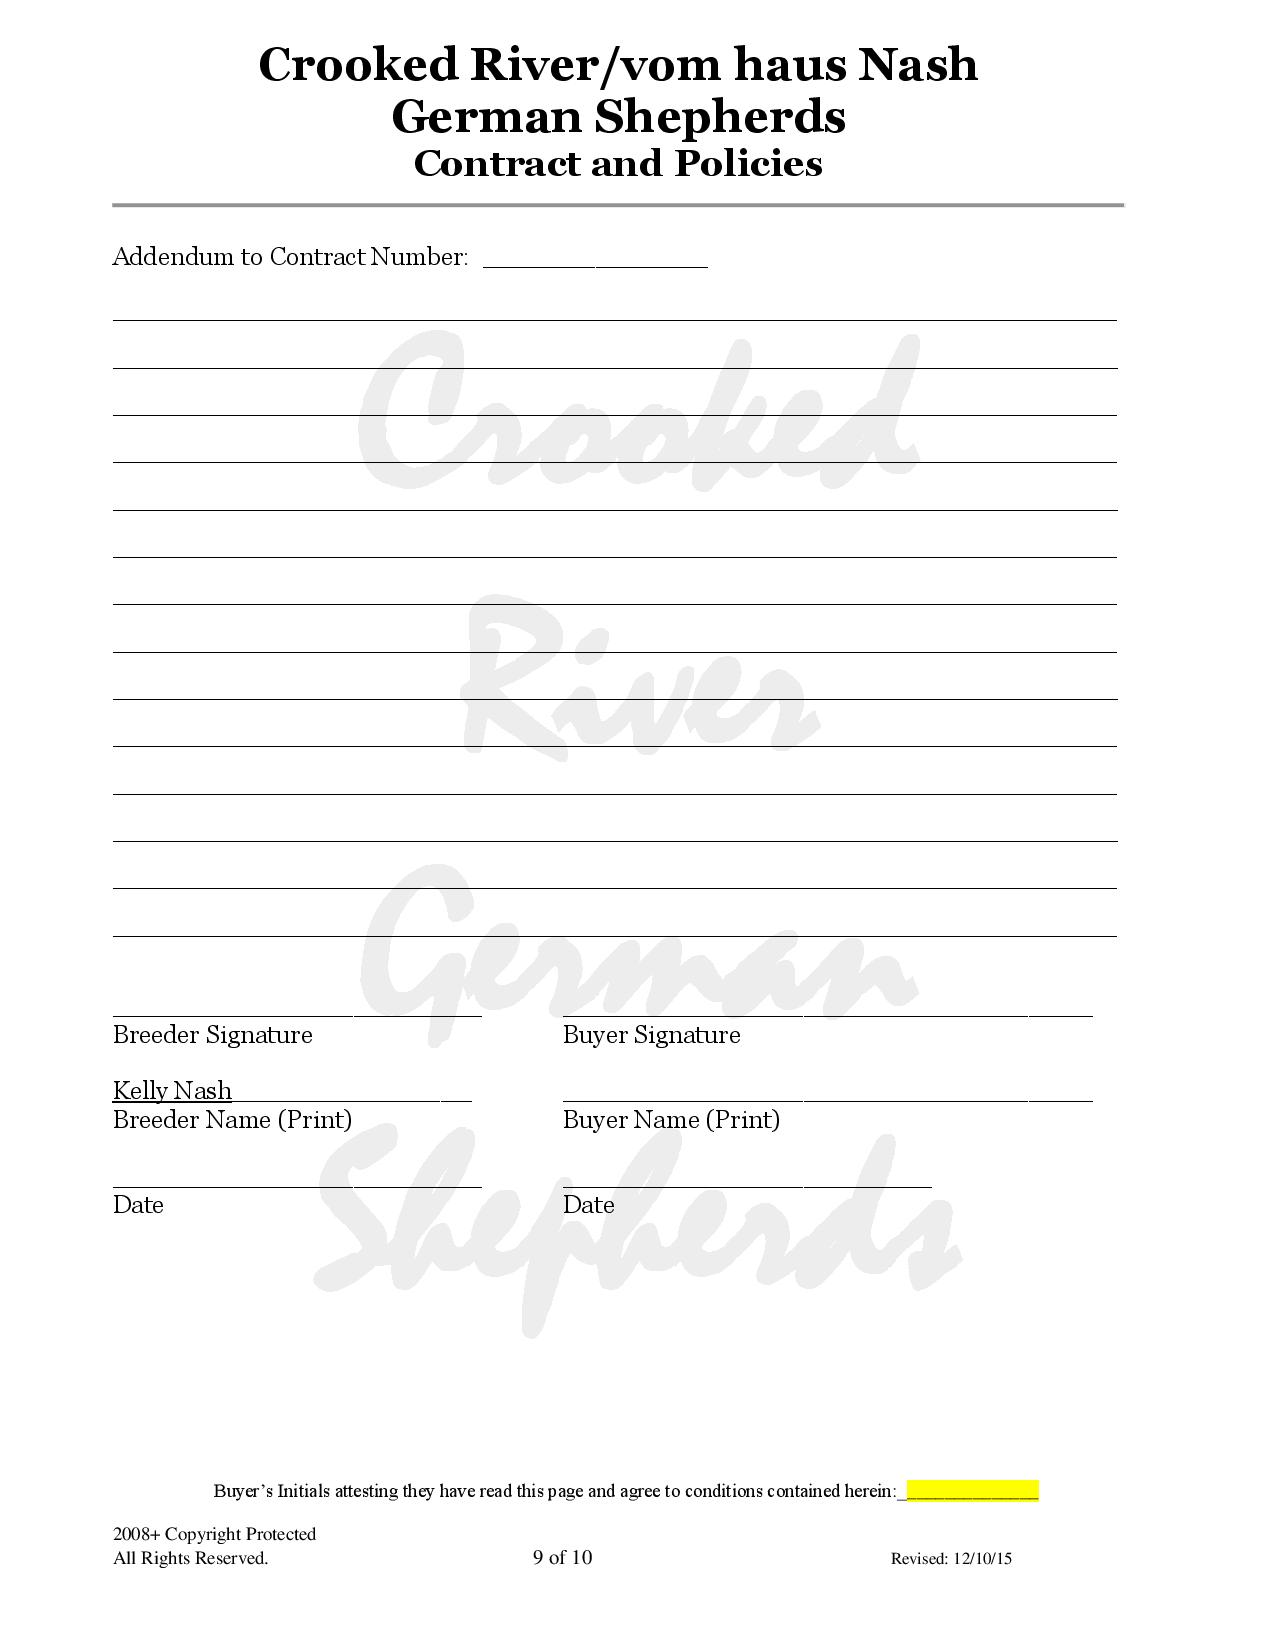 Crooked River Gsd S Contract Page 9